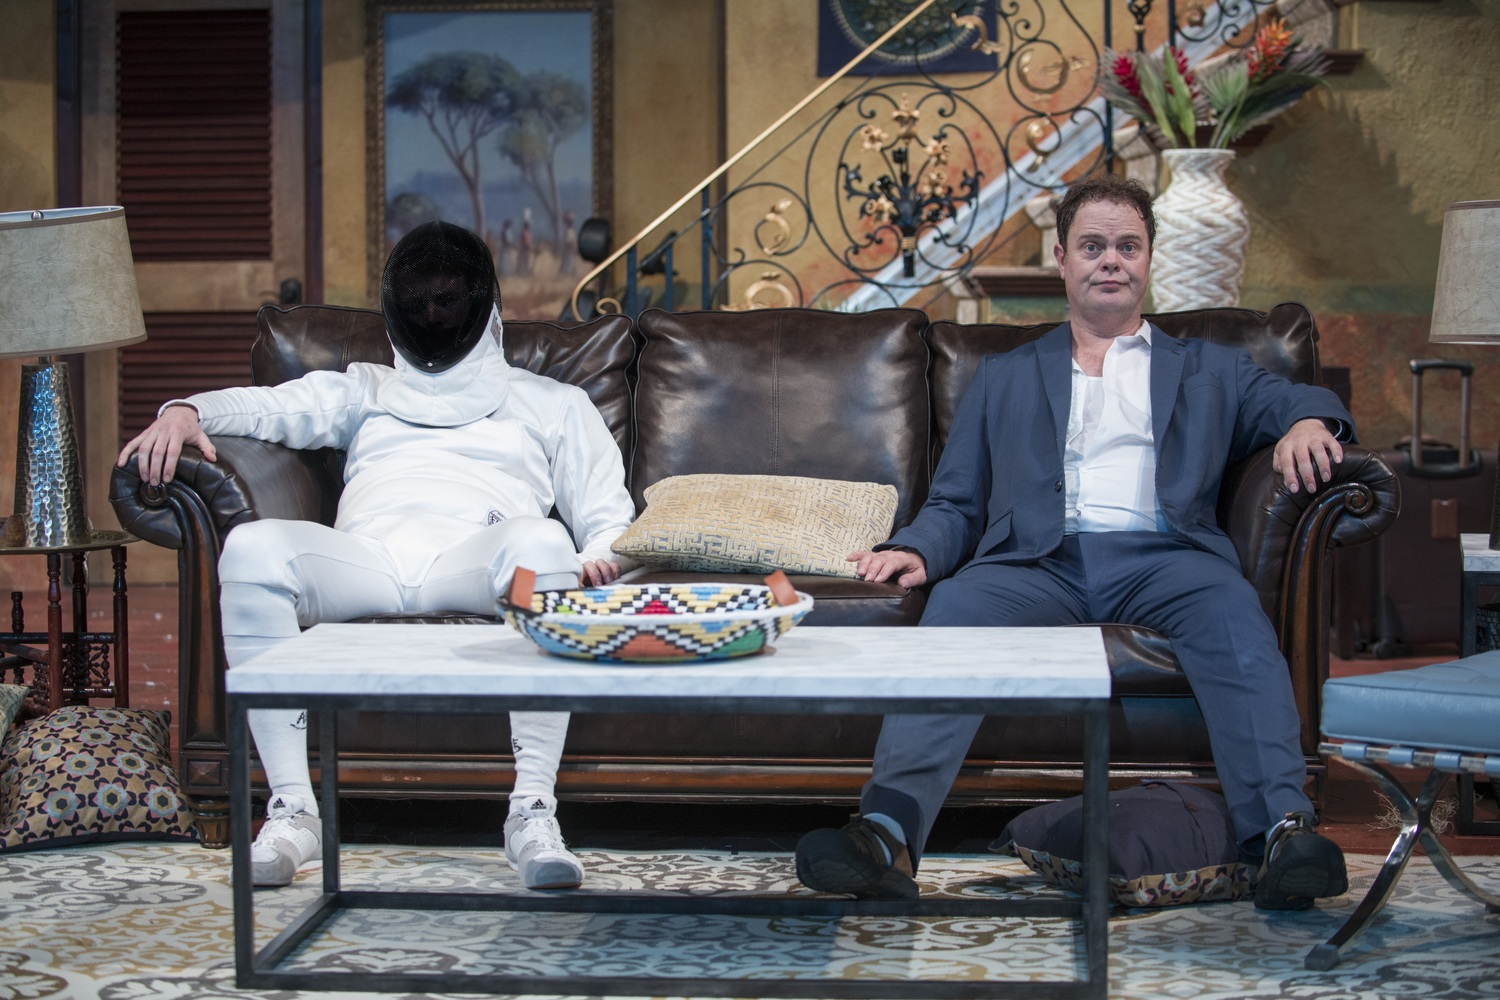 BWW Review: THE DOPPELGÄNGER (AN INTERNATIONAL FARCE) at Steppenwolf Theatre